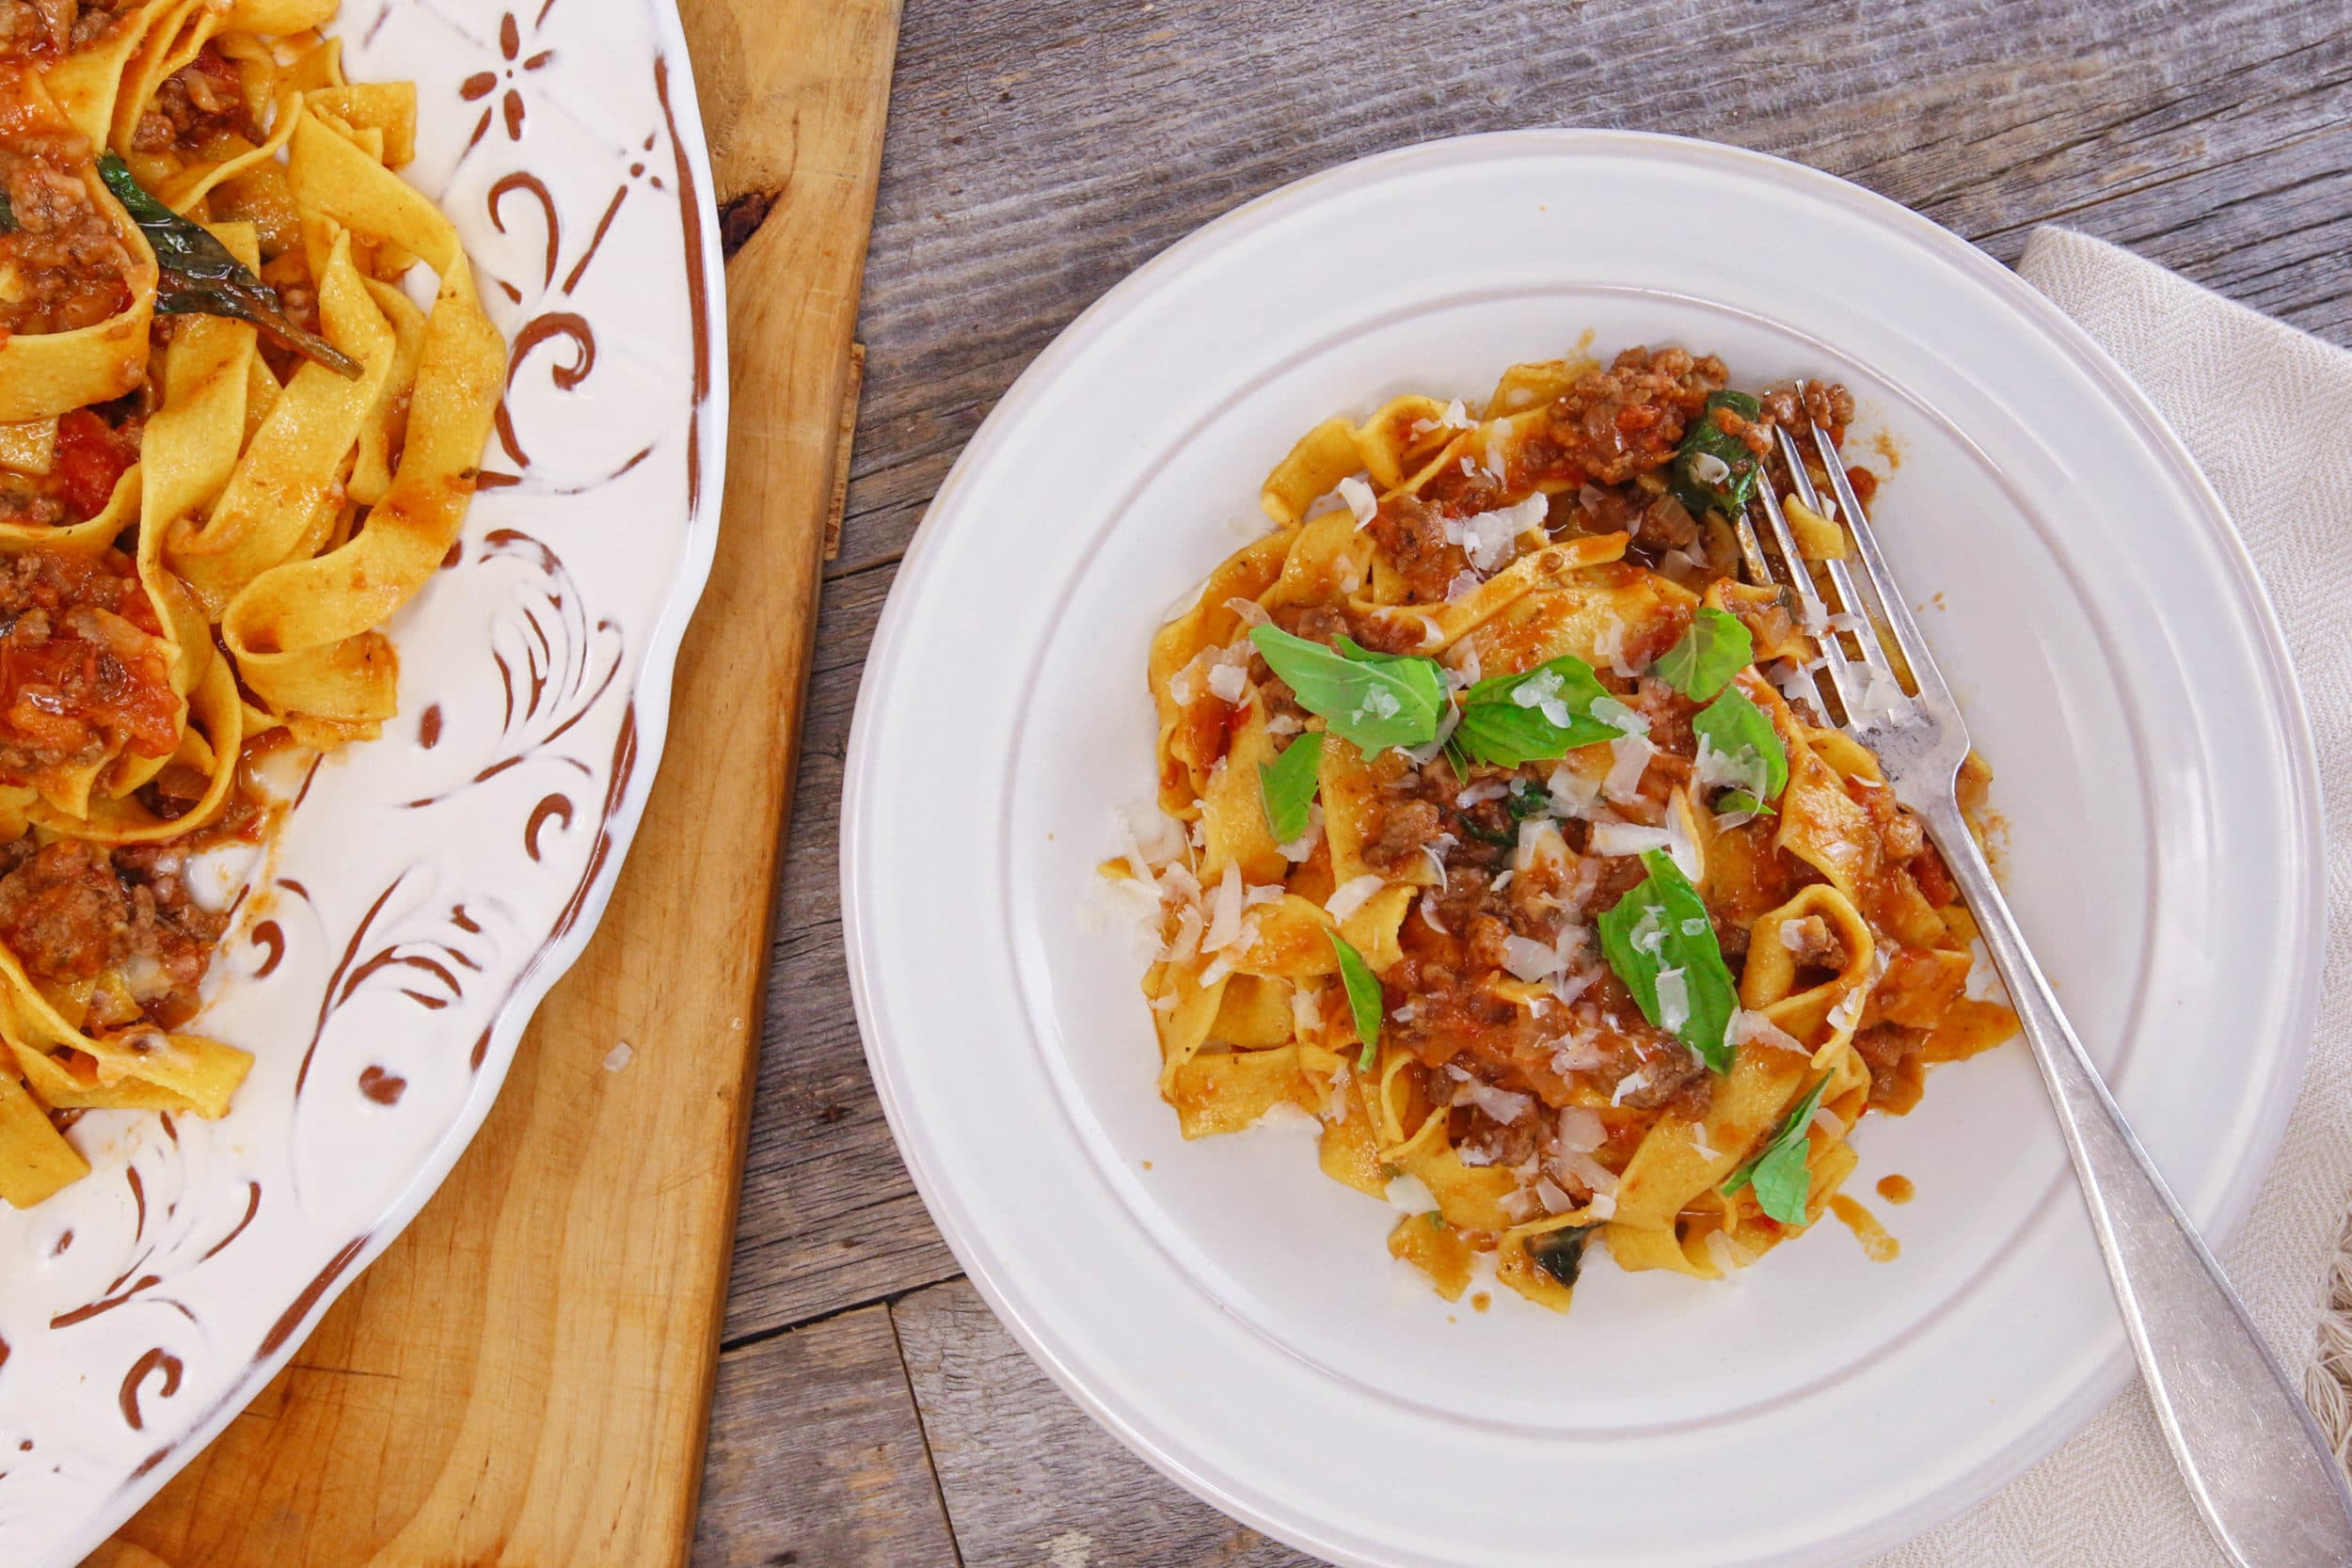 Winter-Spiced Meat Sauce with Pasta Ribbons